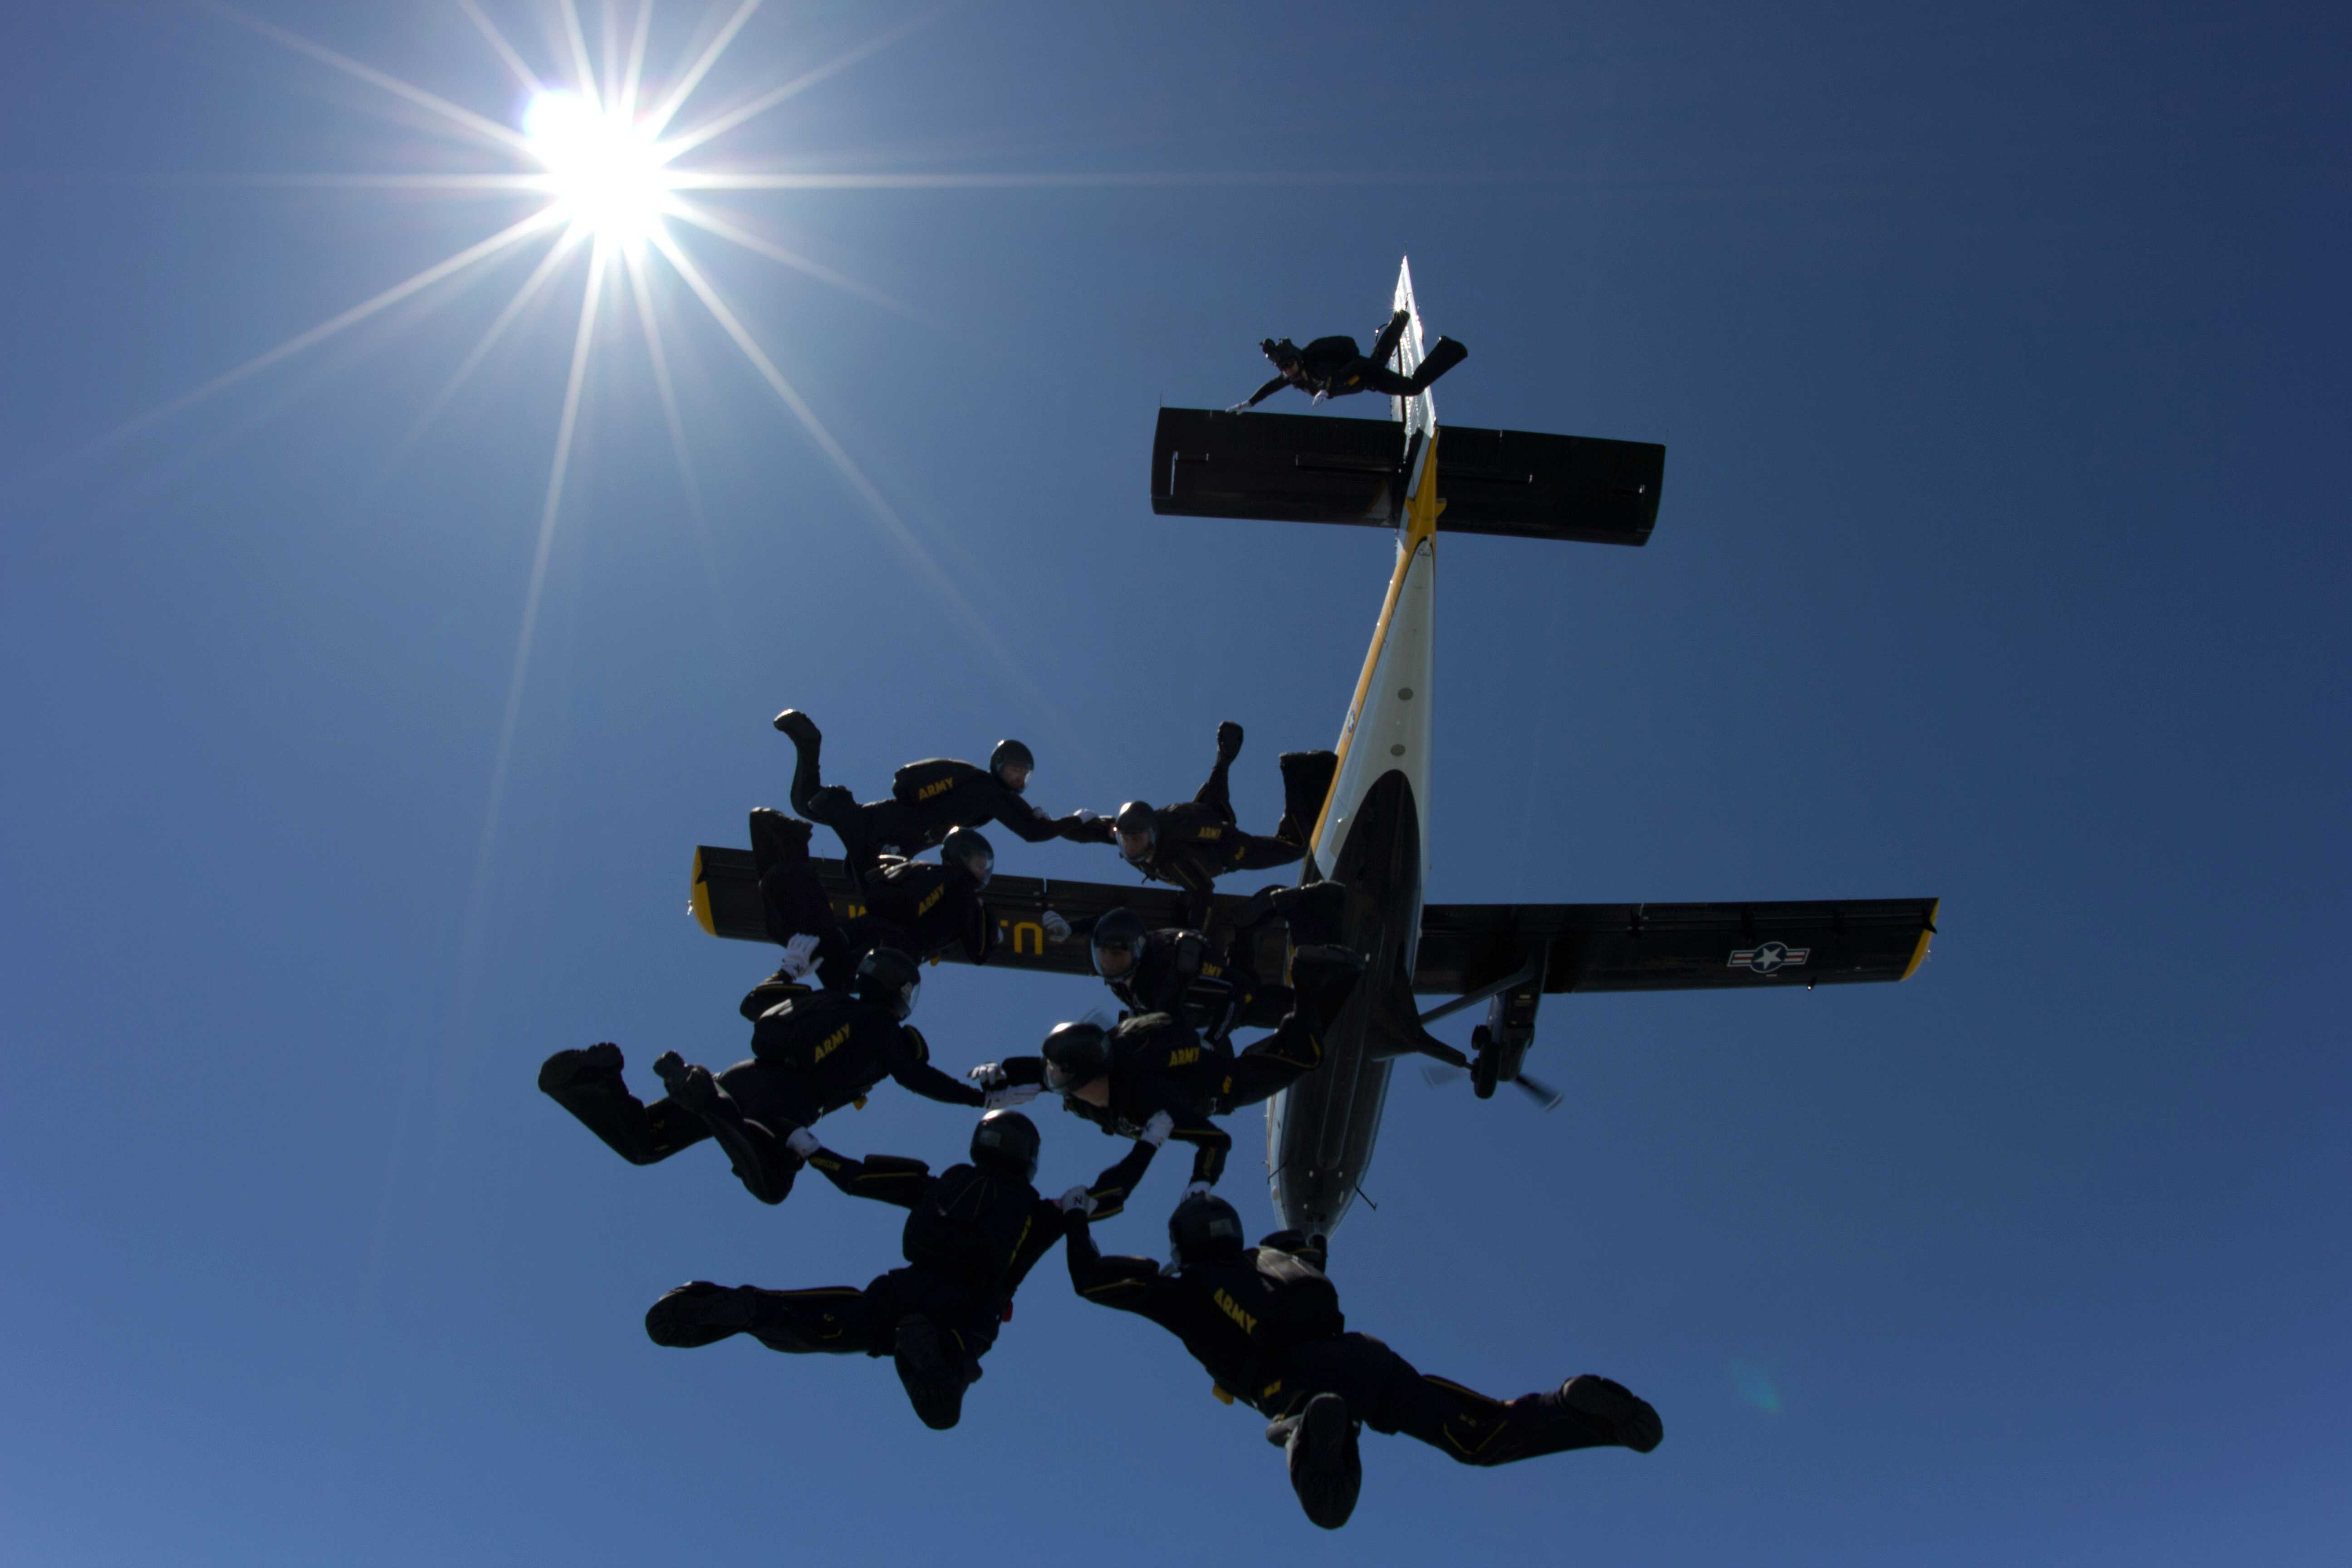 Golden Knights exit their Twin Otter